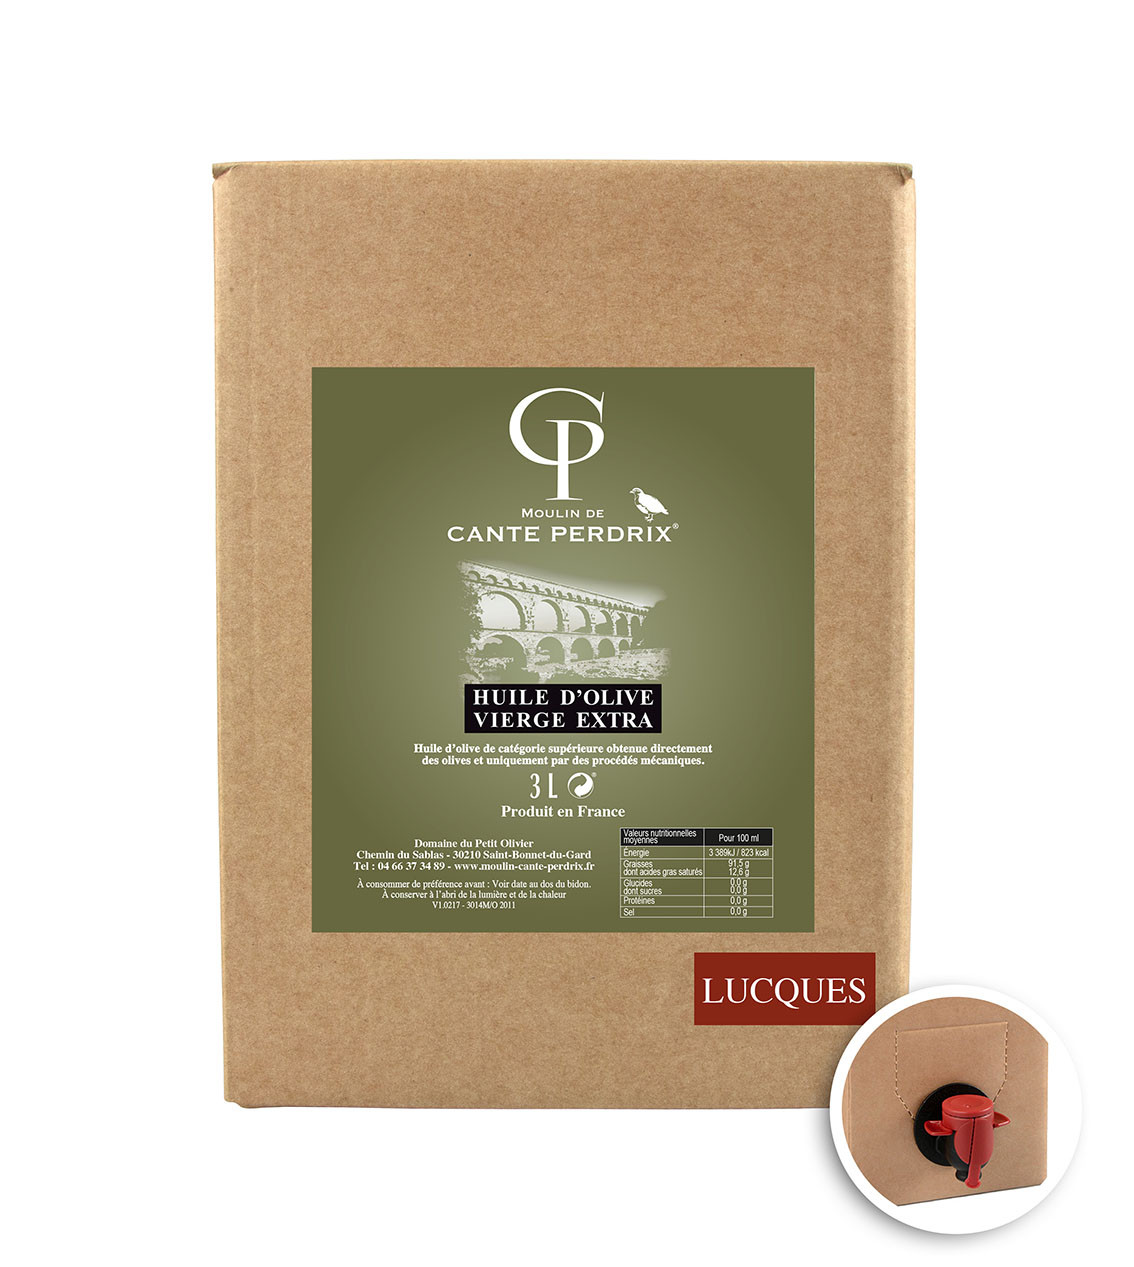 Bag in Box 3L - Huile d'olive vierge La Douce (La Lucques)